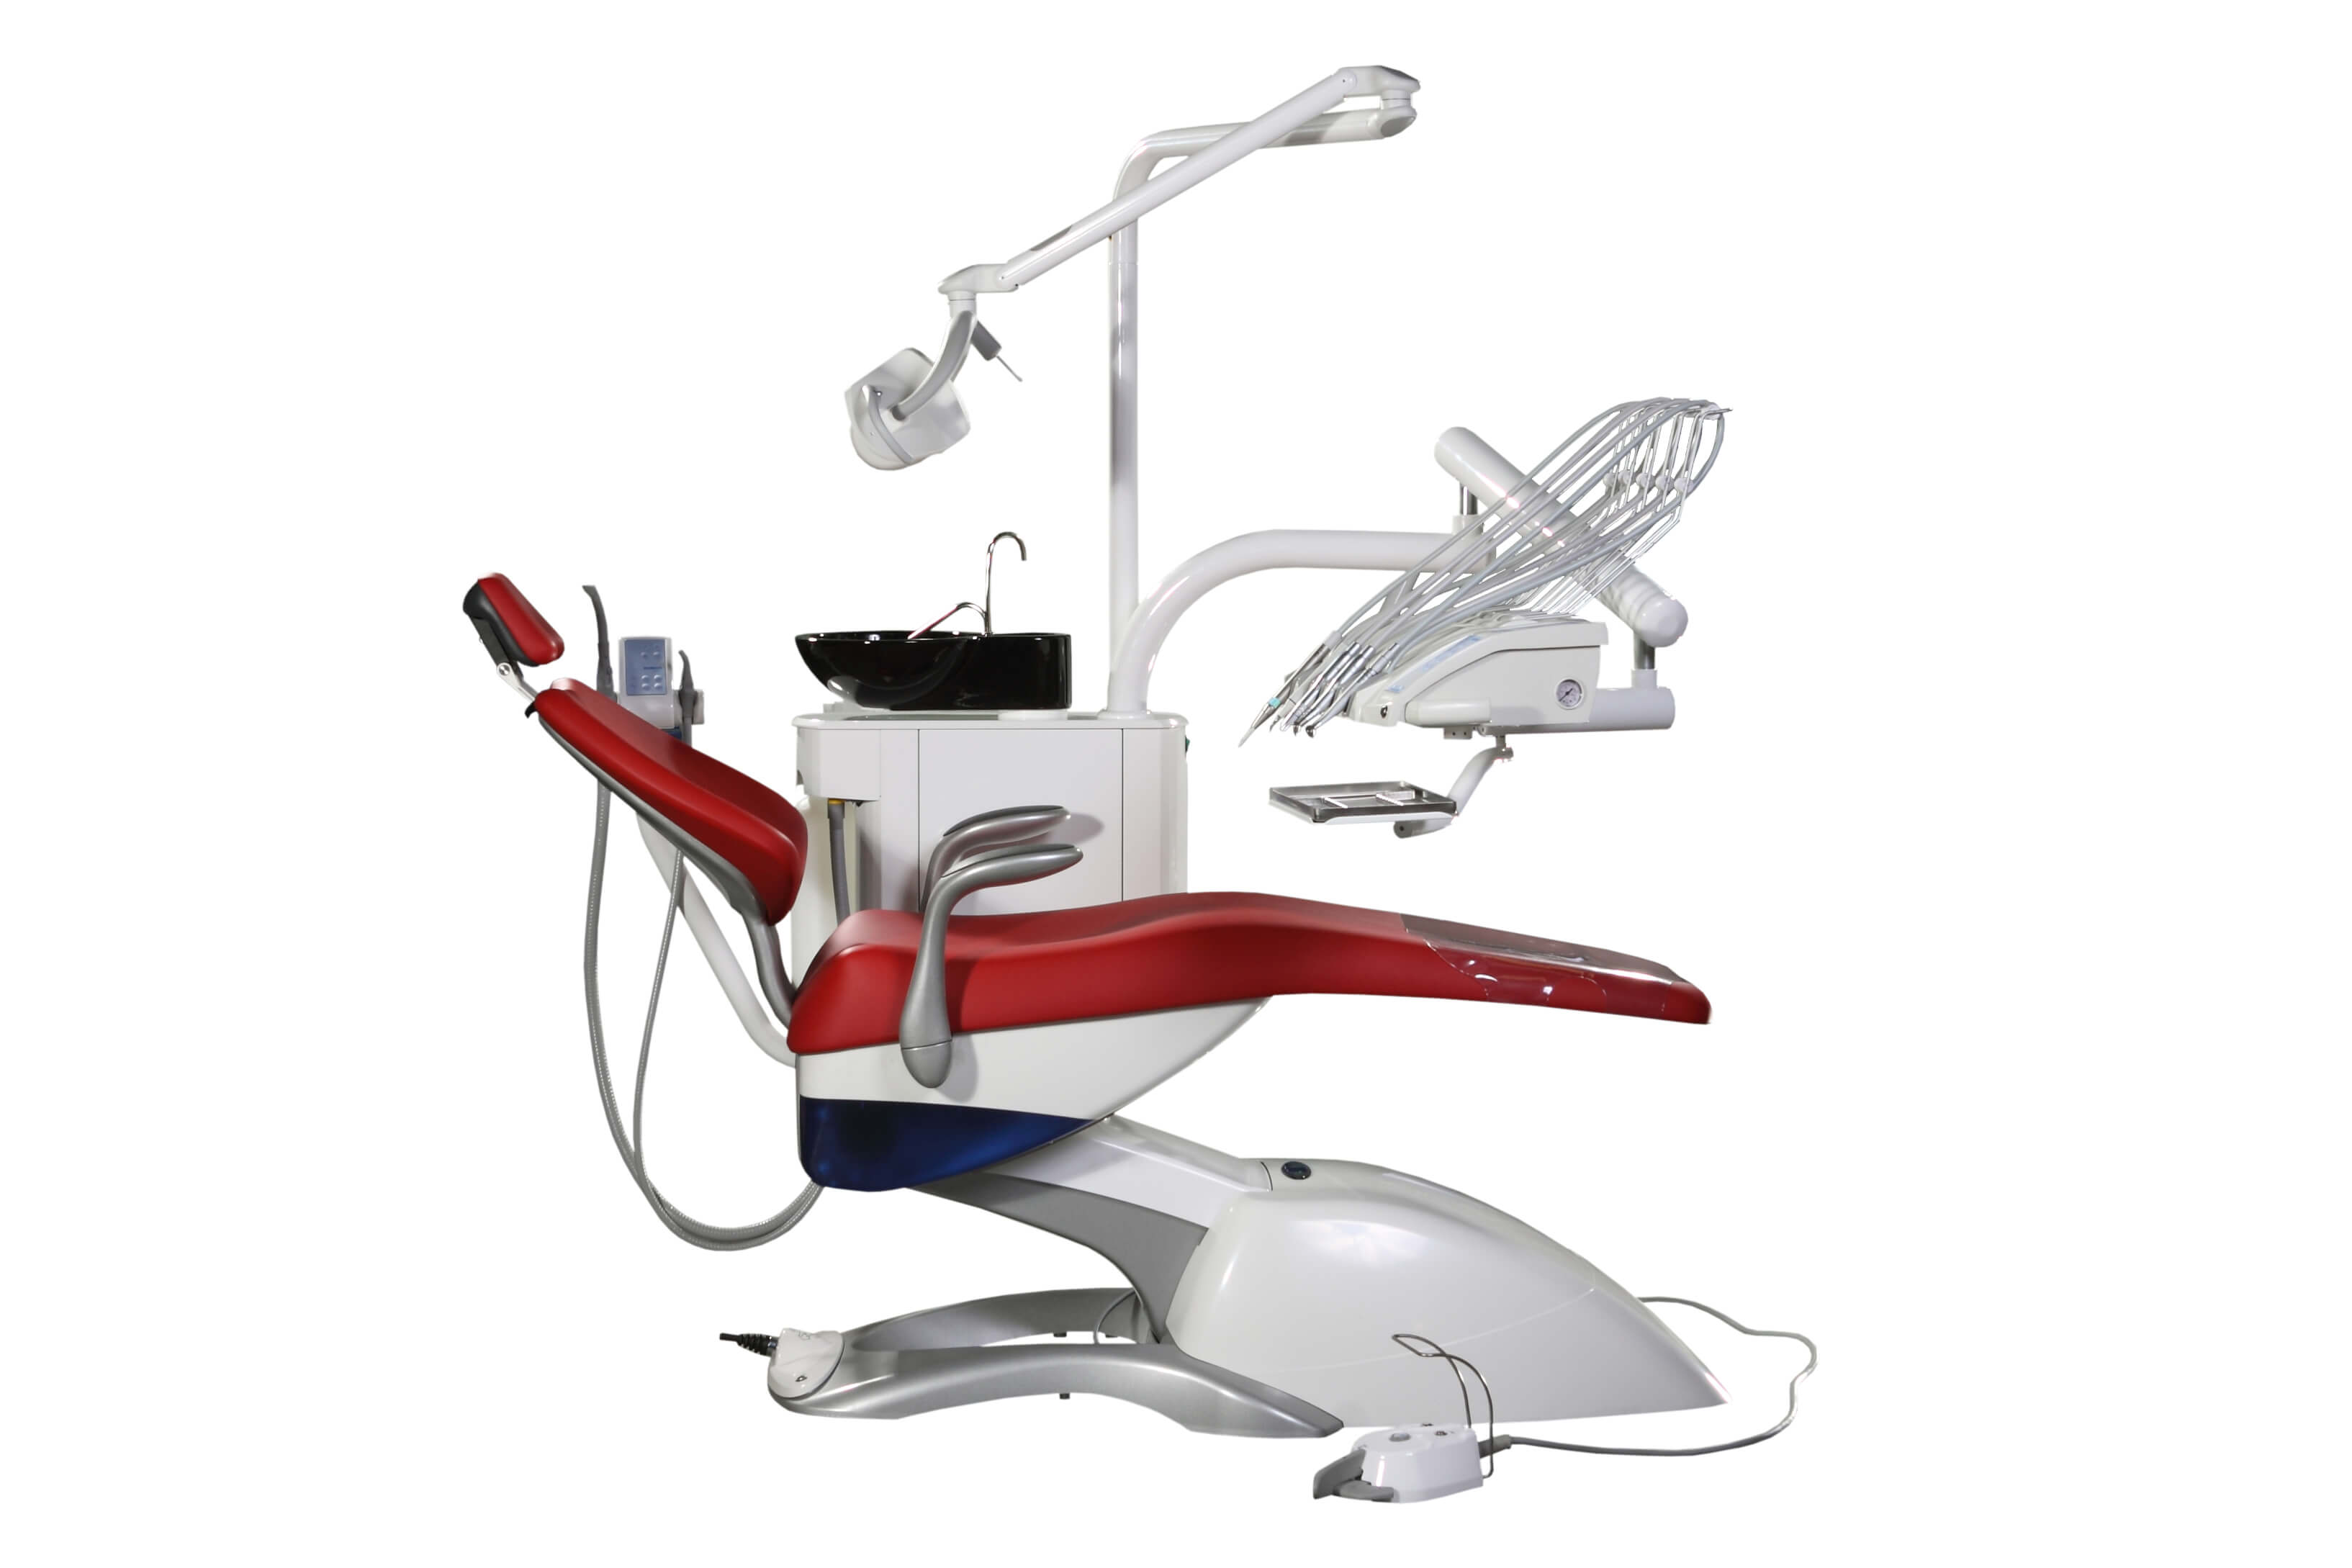 Elexadent Dental Equipment Consumables Spare Parts and Servicing UK